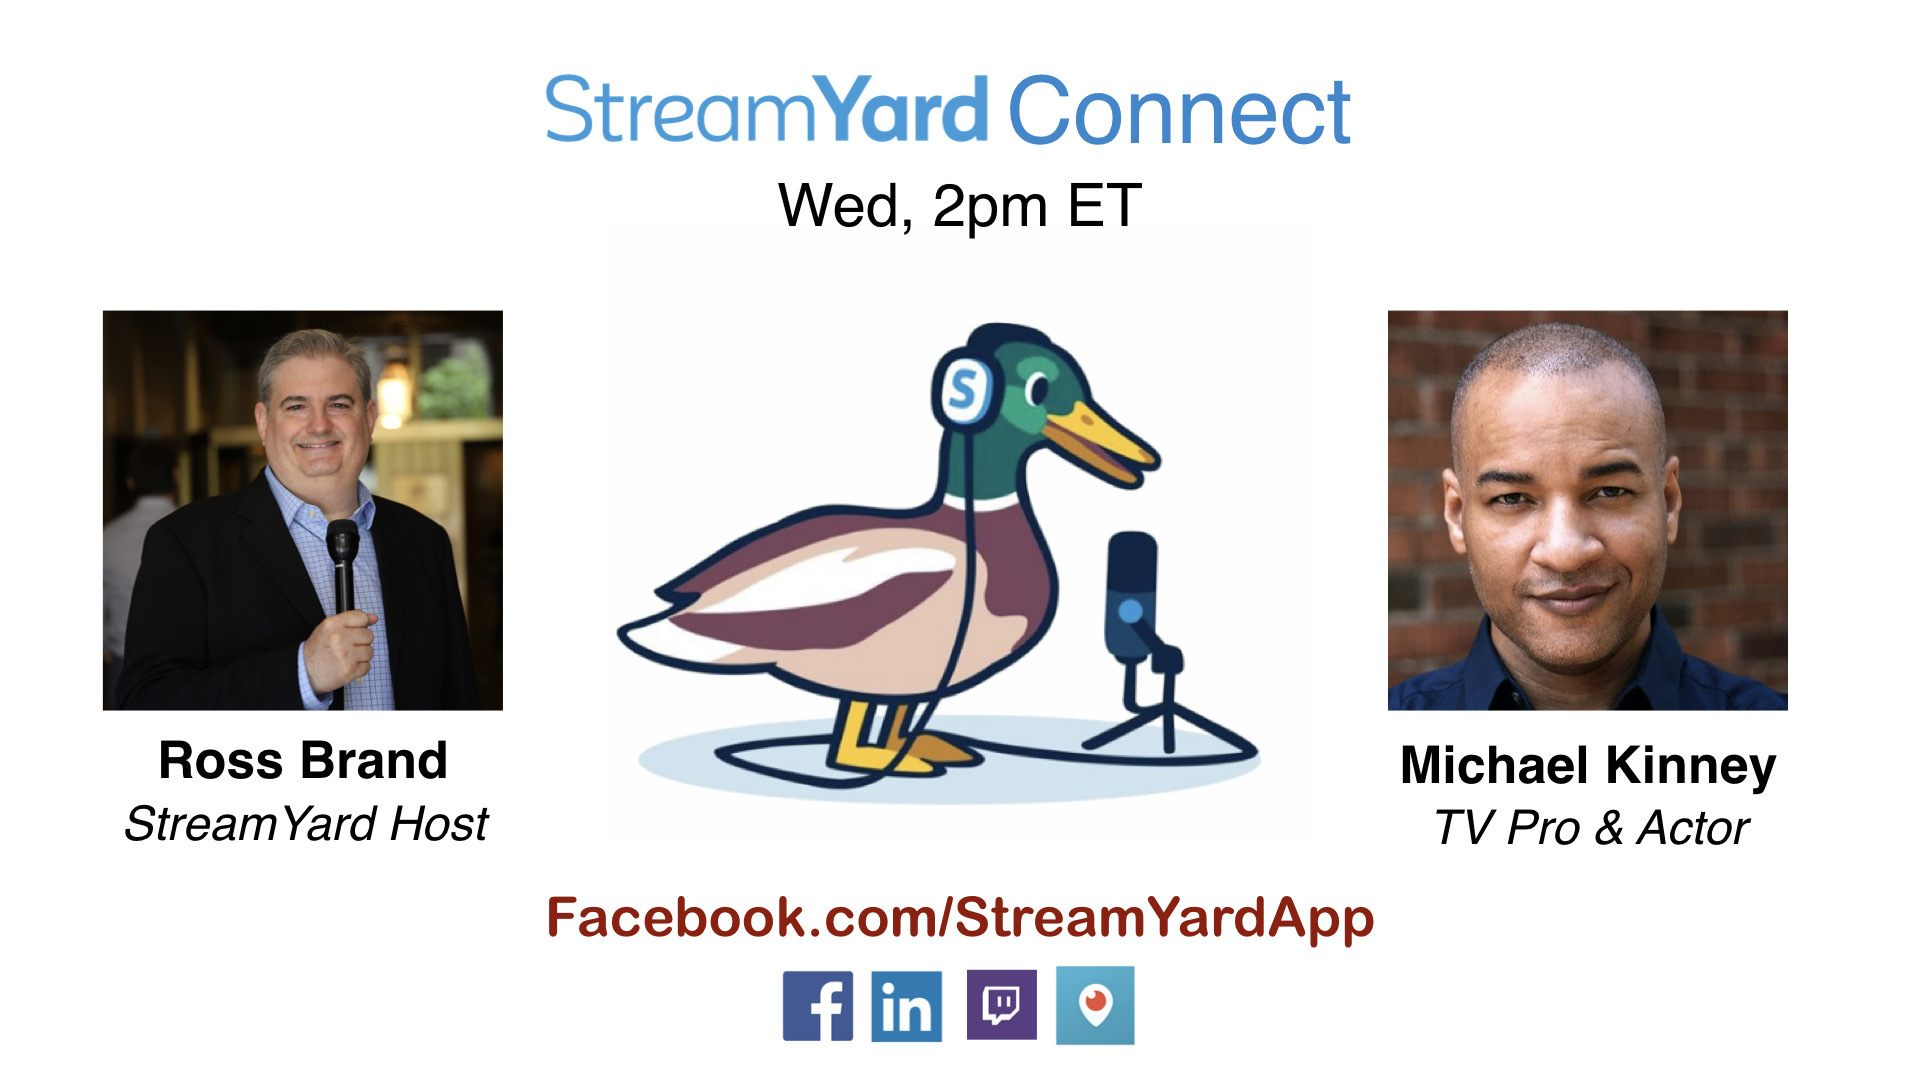 streamyard connect with ross brand ep19 Michael Kinney how to